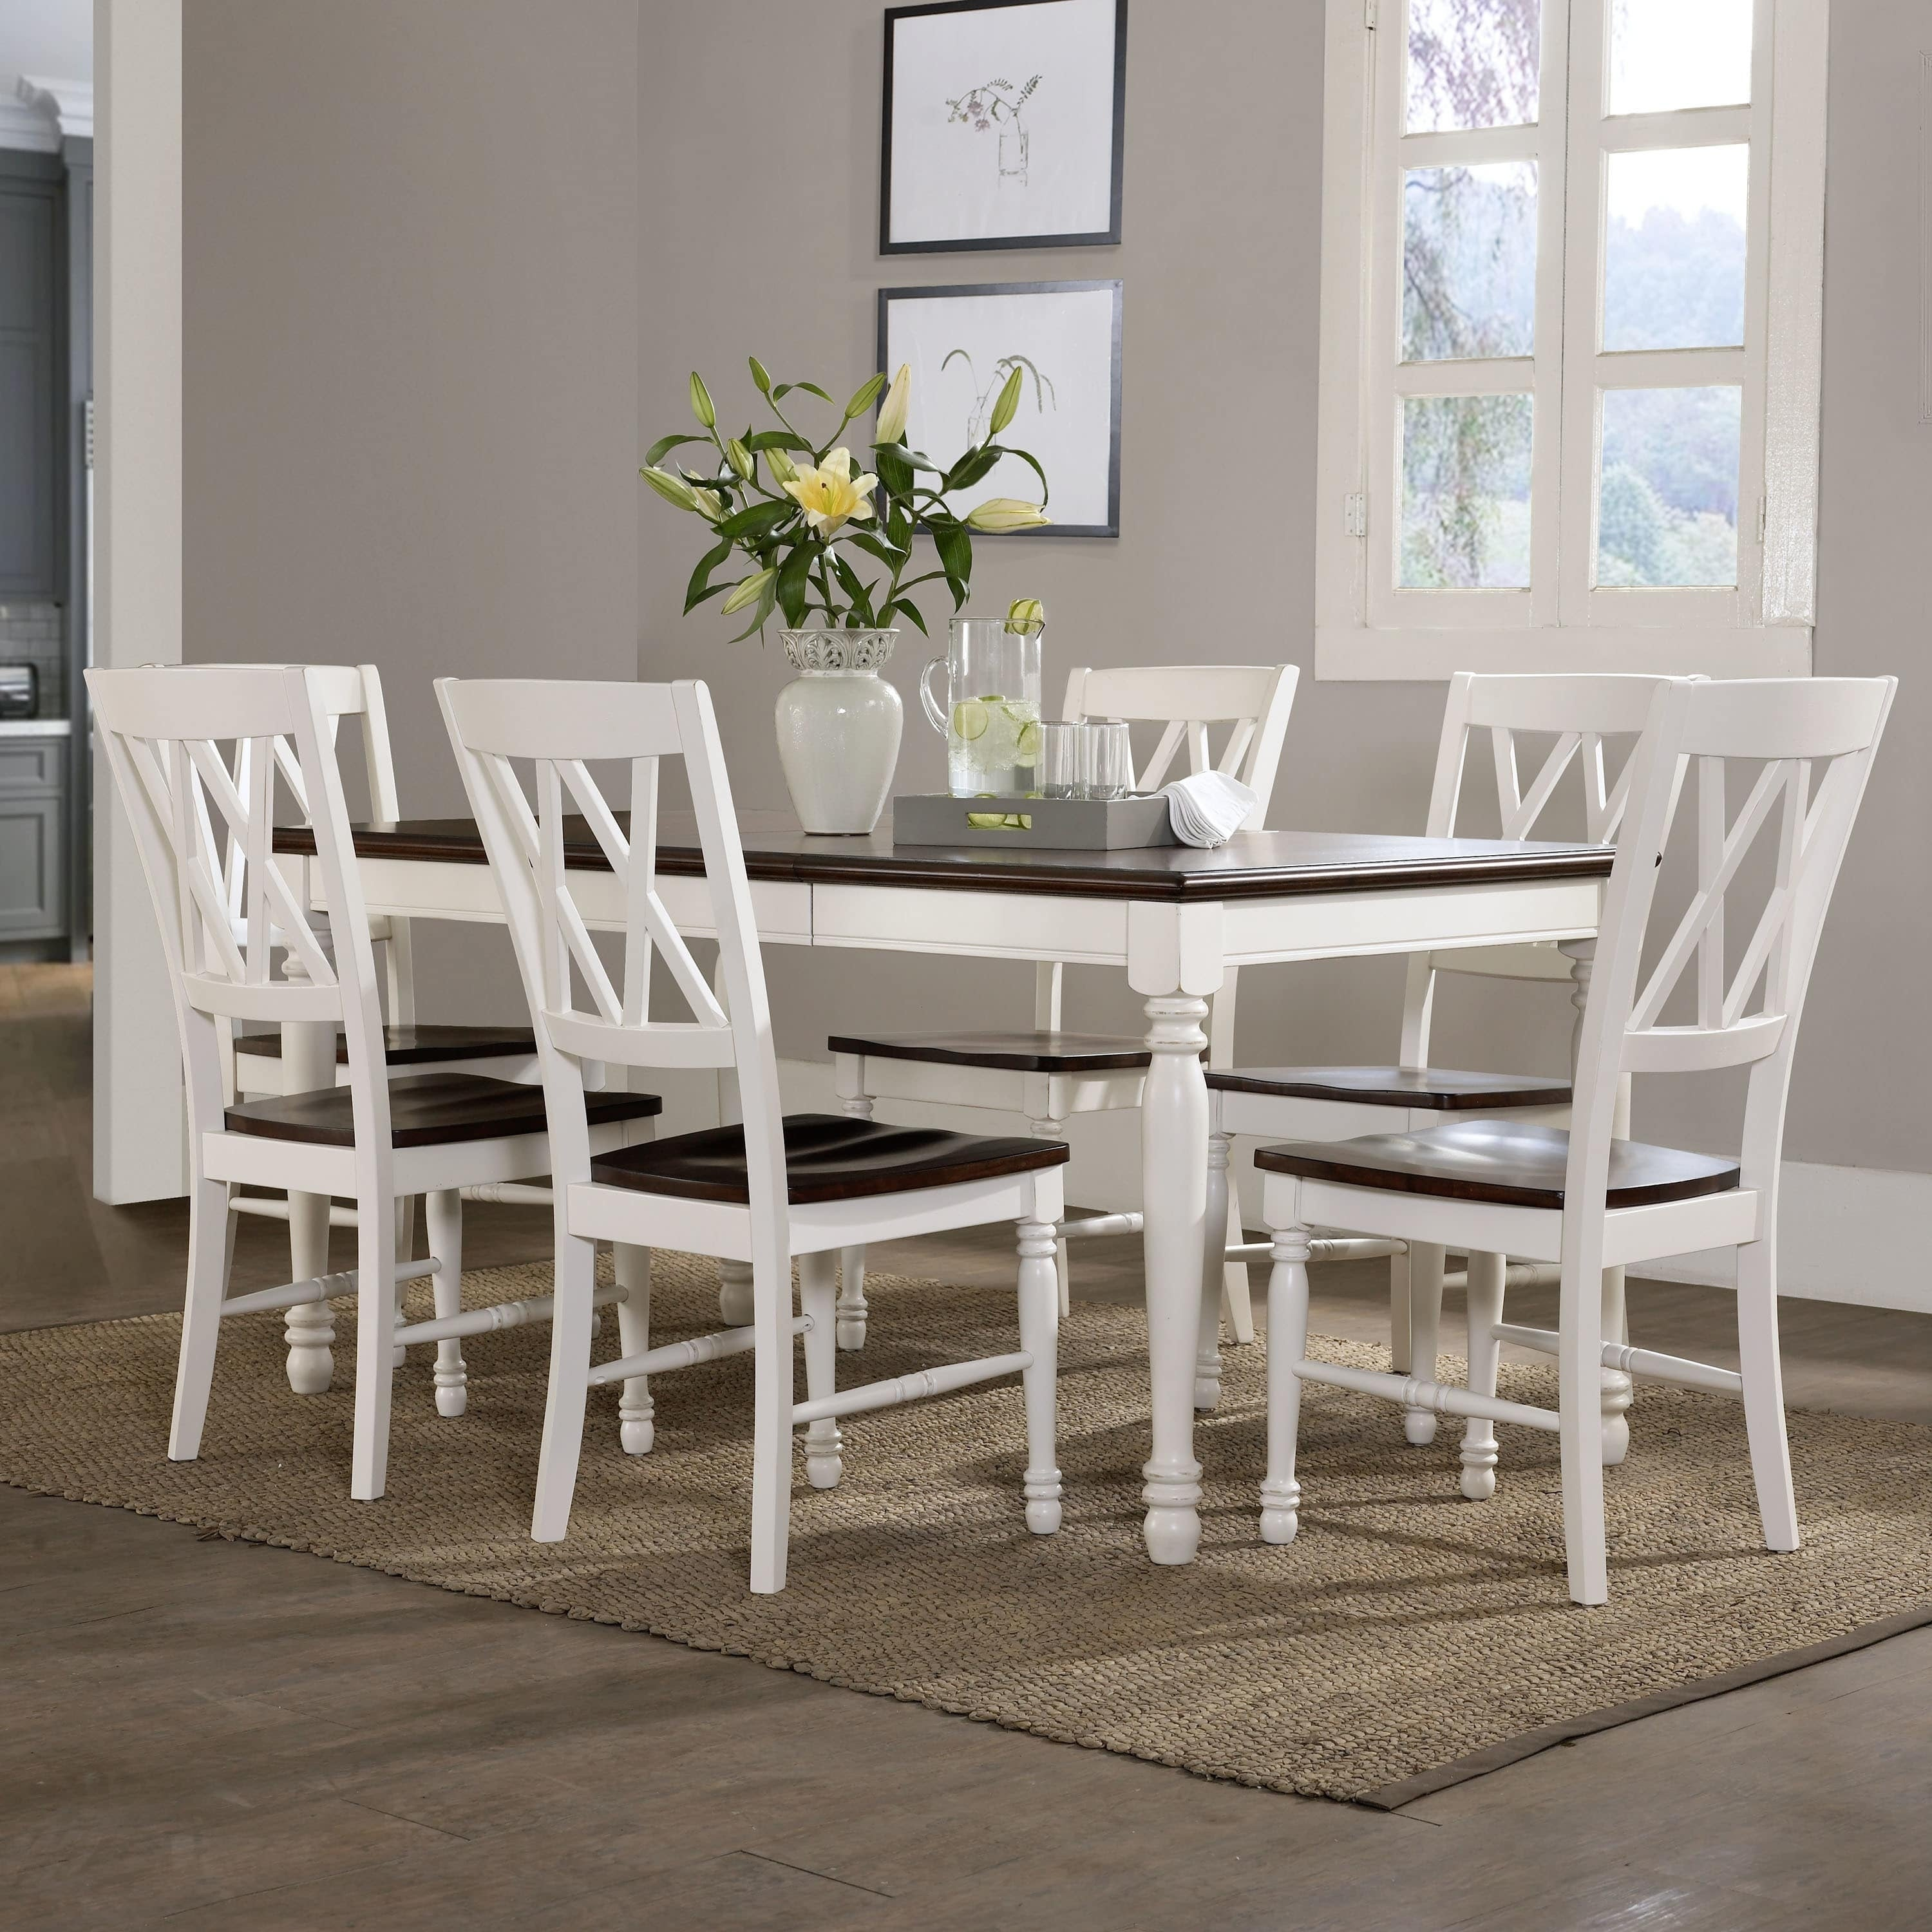 7 piece dining set with bench chair shop shelby 7piece dining set white free shipping today overstockcom 16047284